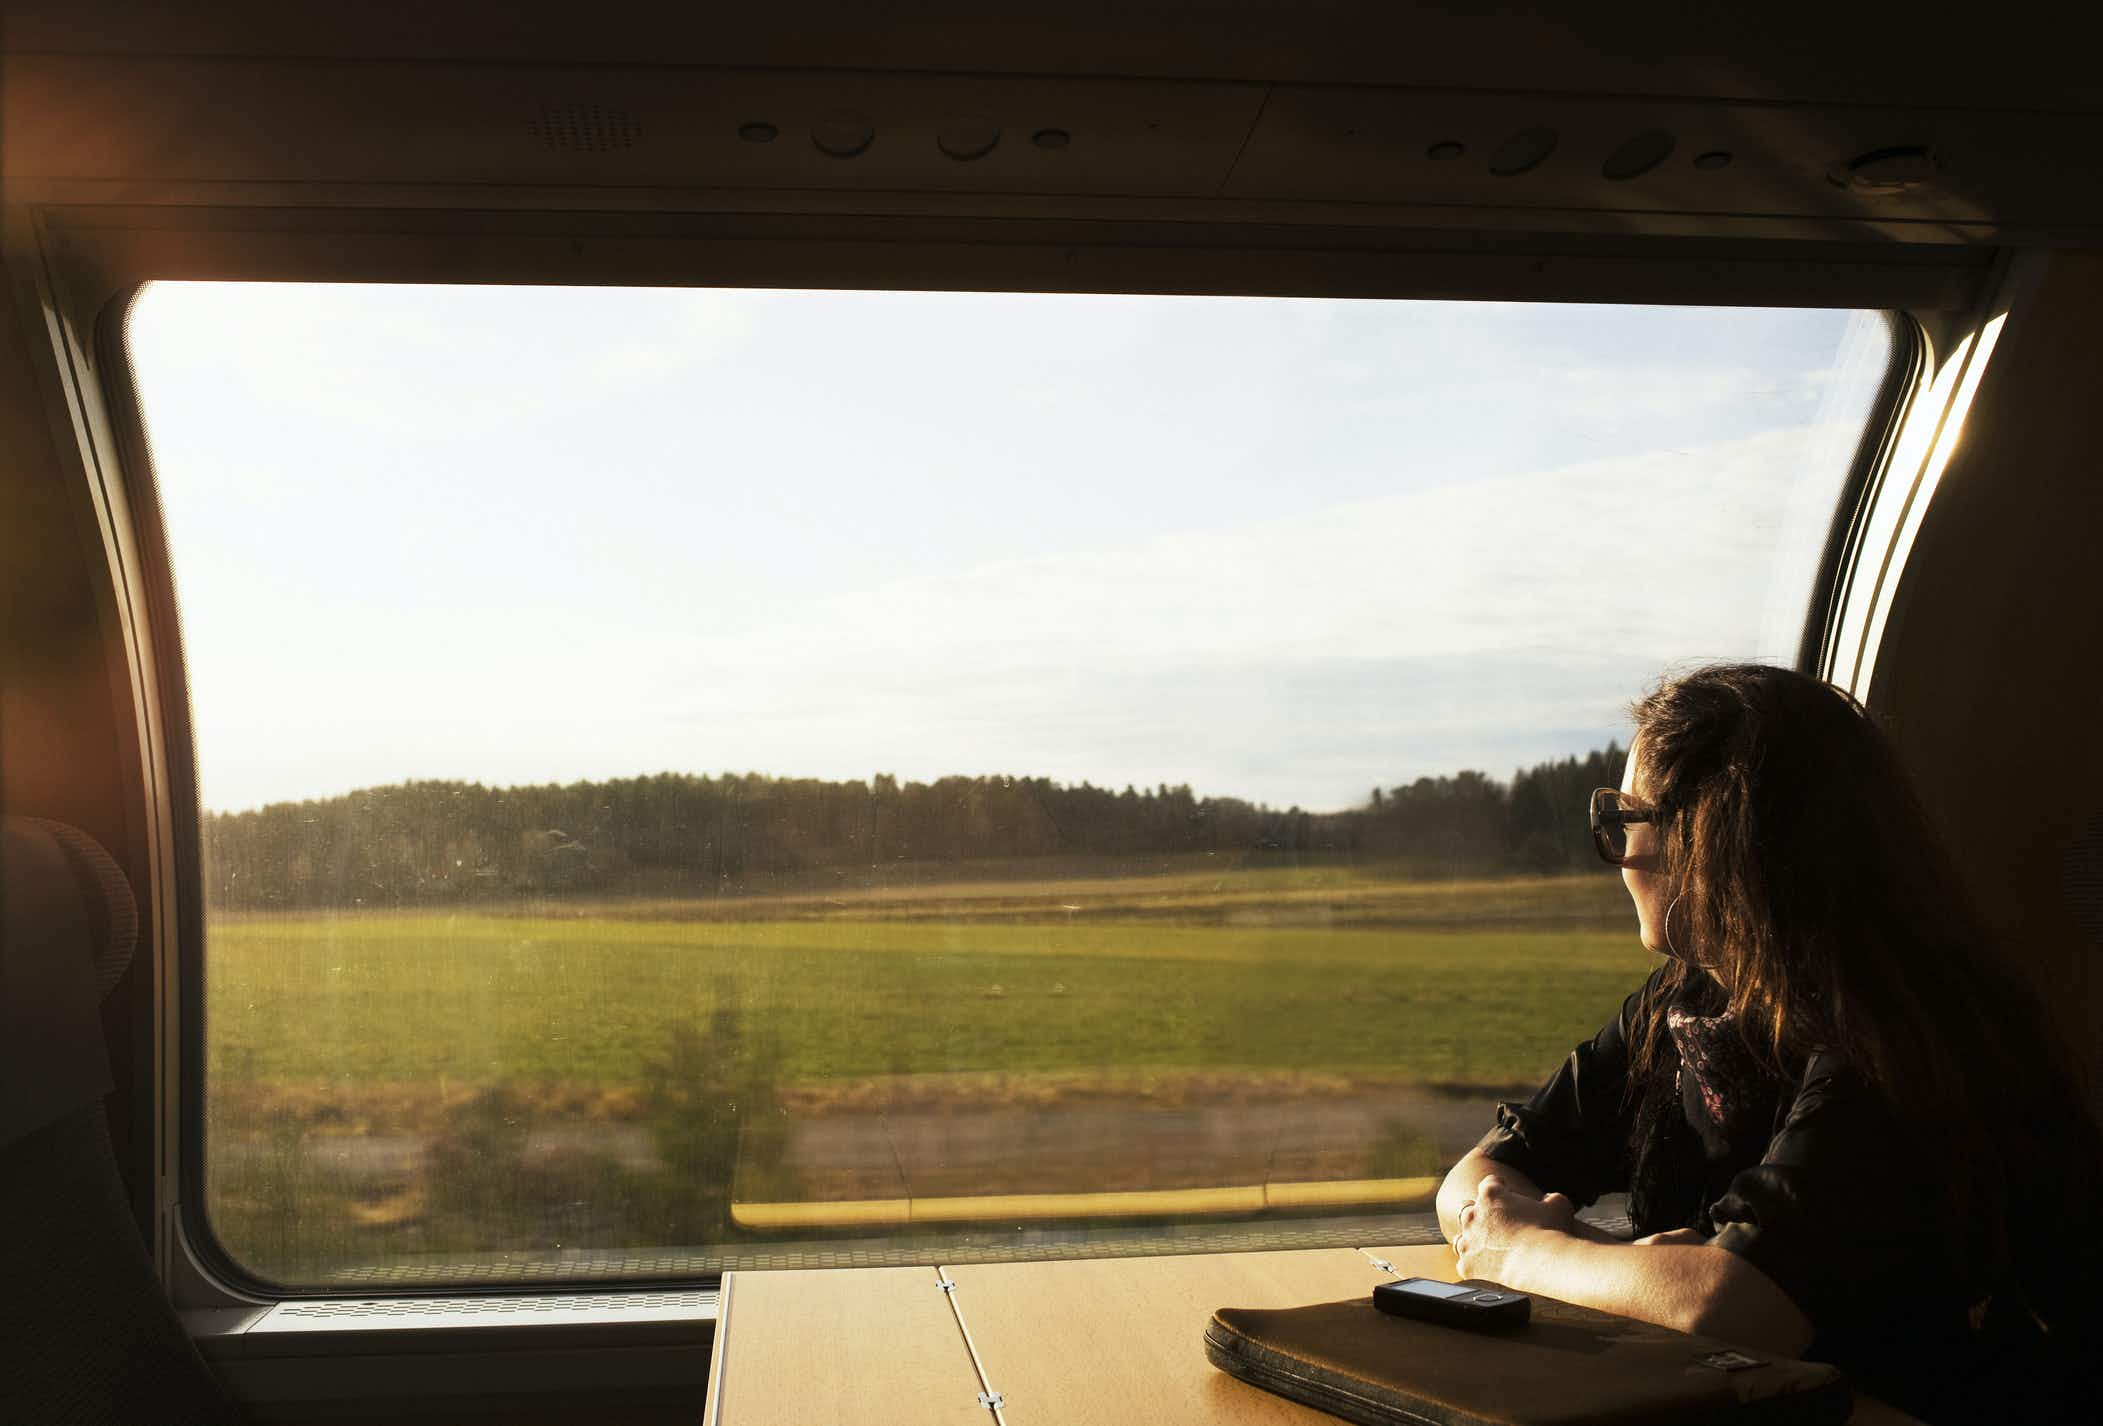 'Flight shame' is persuading Swedes to opt for rail travel over air